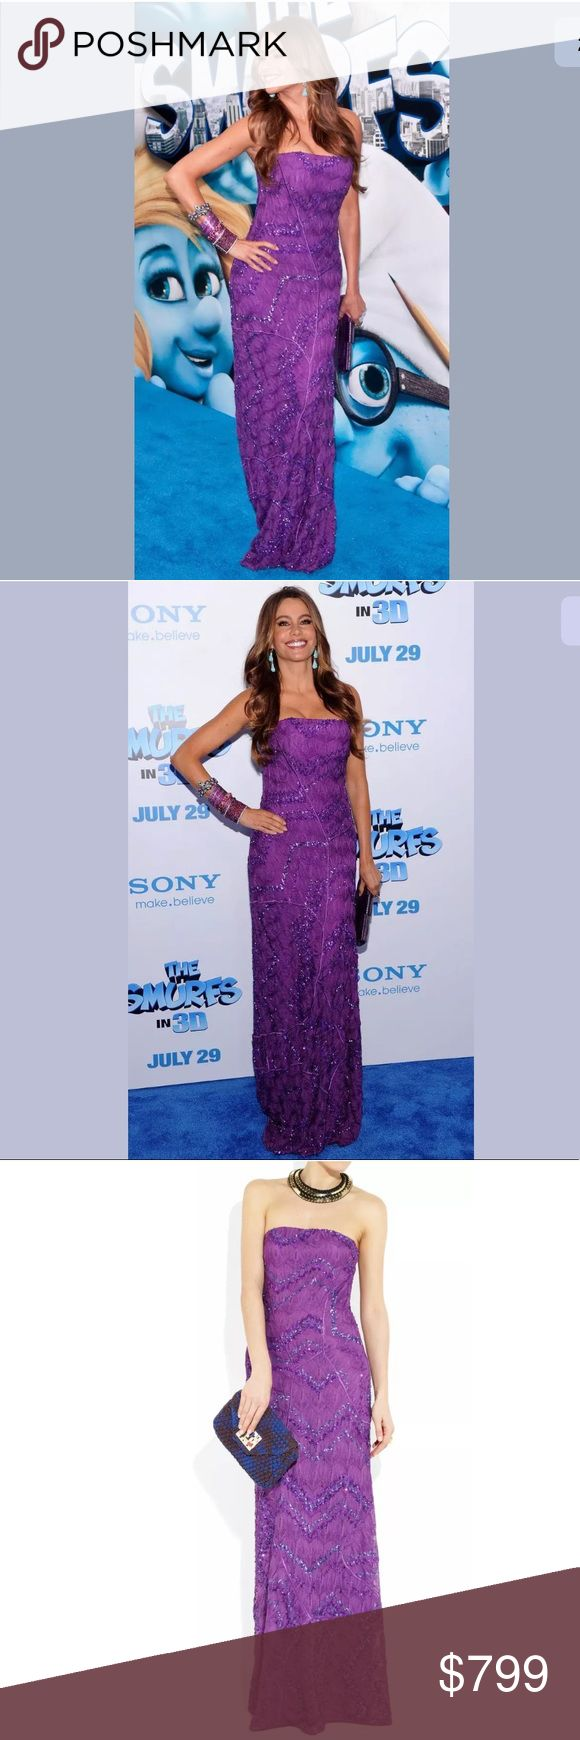 Missoni Purple Sequined Gown New with orange tag Missoni purple sequin need down as seen actress Sofia Vargara see last picture in roll for all details size 38/4 retails @ $4185.00 Missoni Dresses